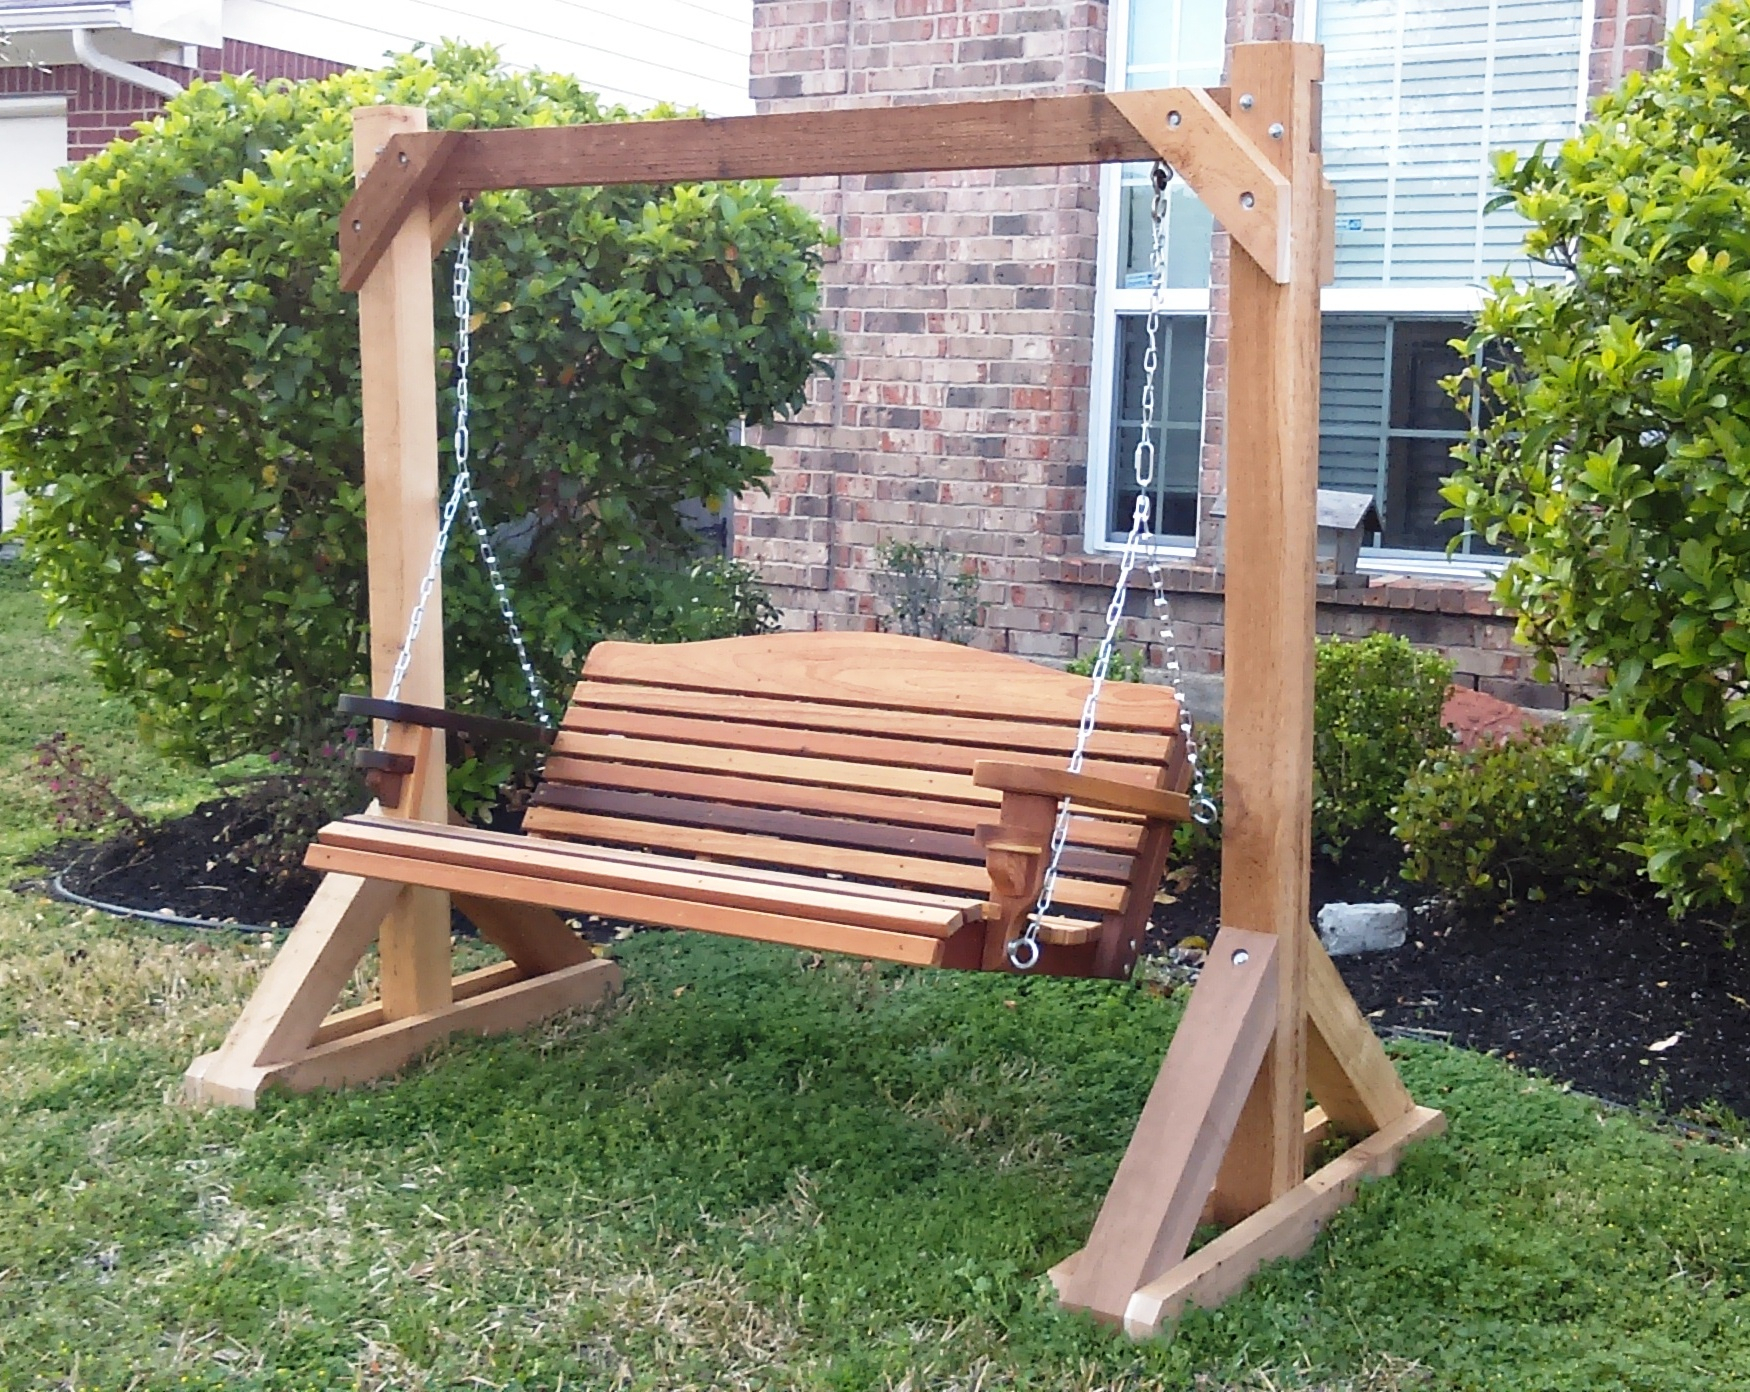 Inspirations: Enjoy Your All Day With Cozy Wooden Porch Within Wicker Glider Outdoor Porch Swings With Stand (View 11 of 25)